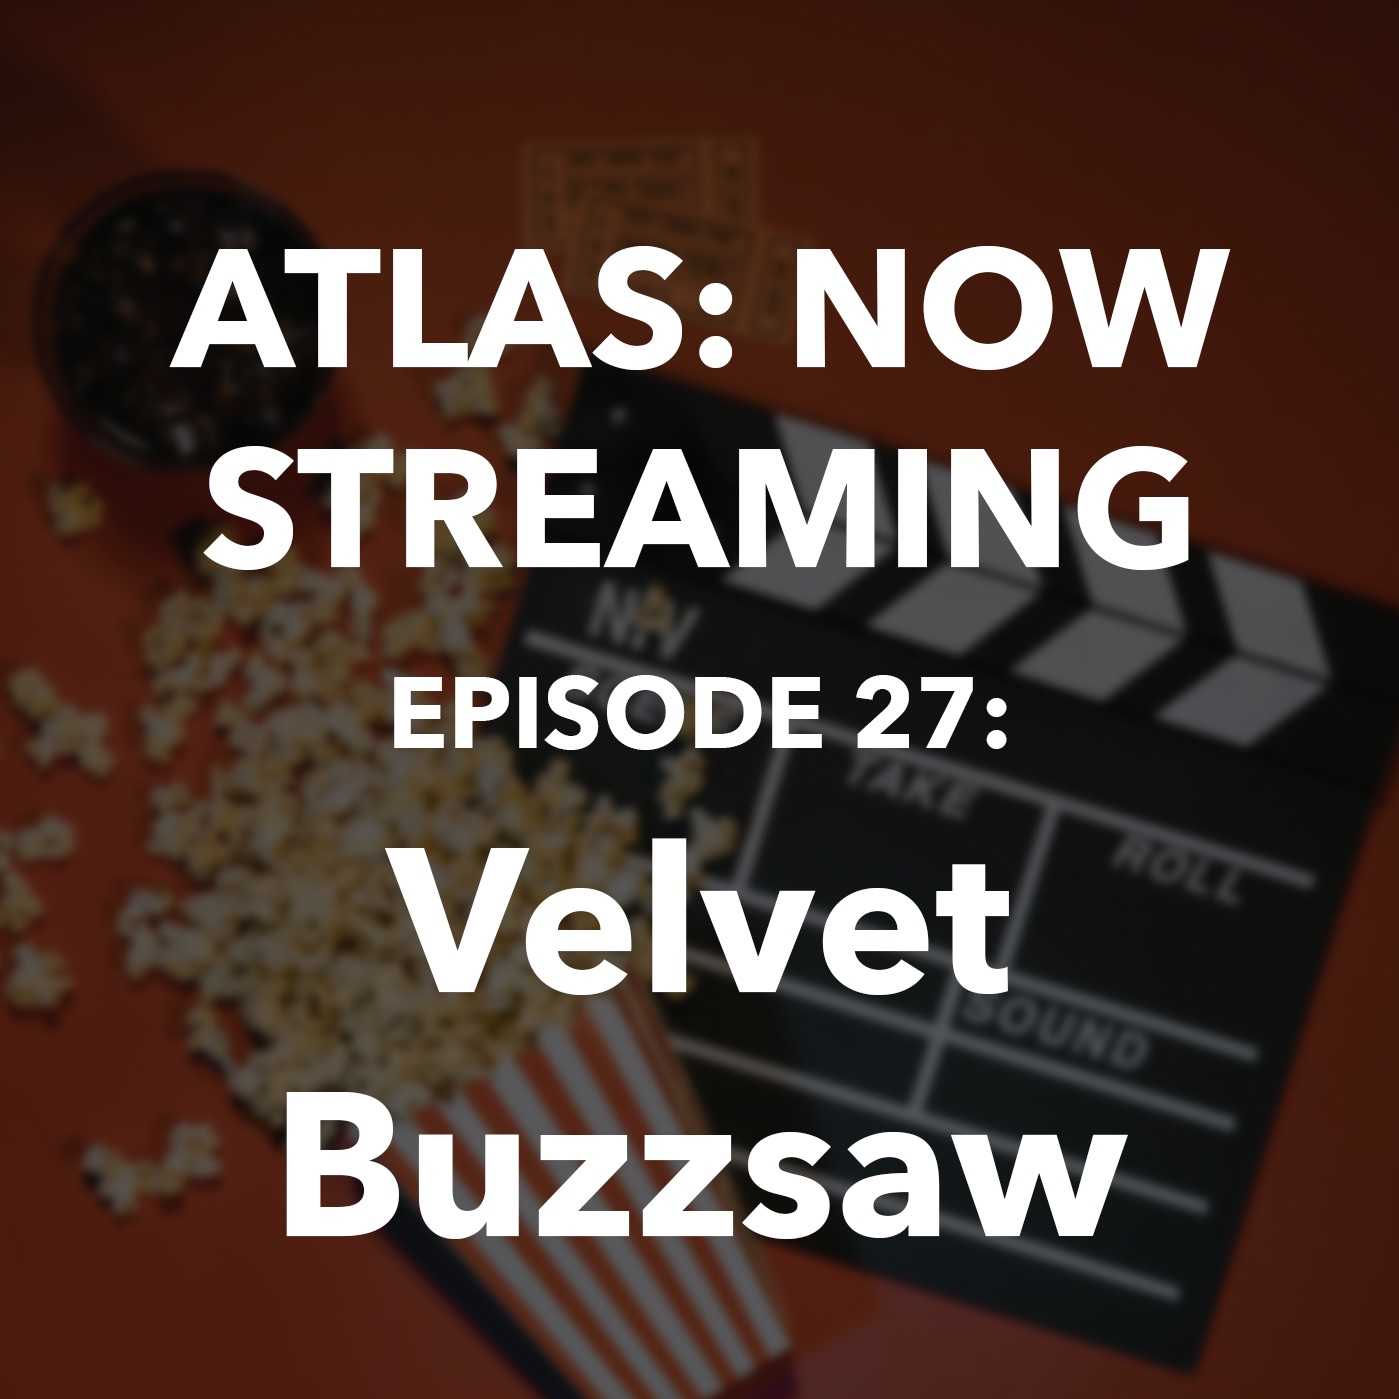 Atlas: Now Streaming Episode 27 - Velvet Buzzsaw